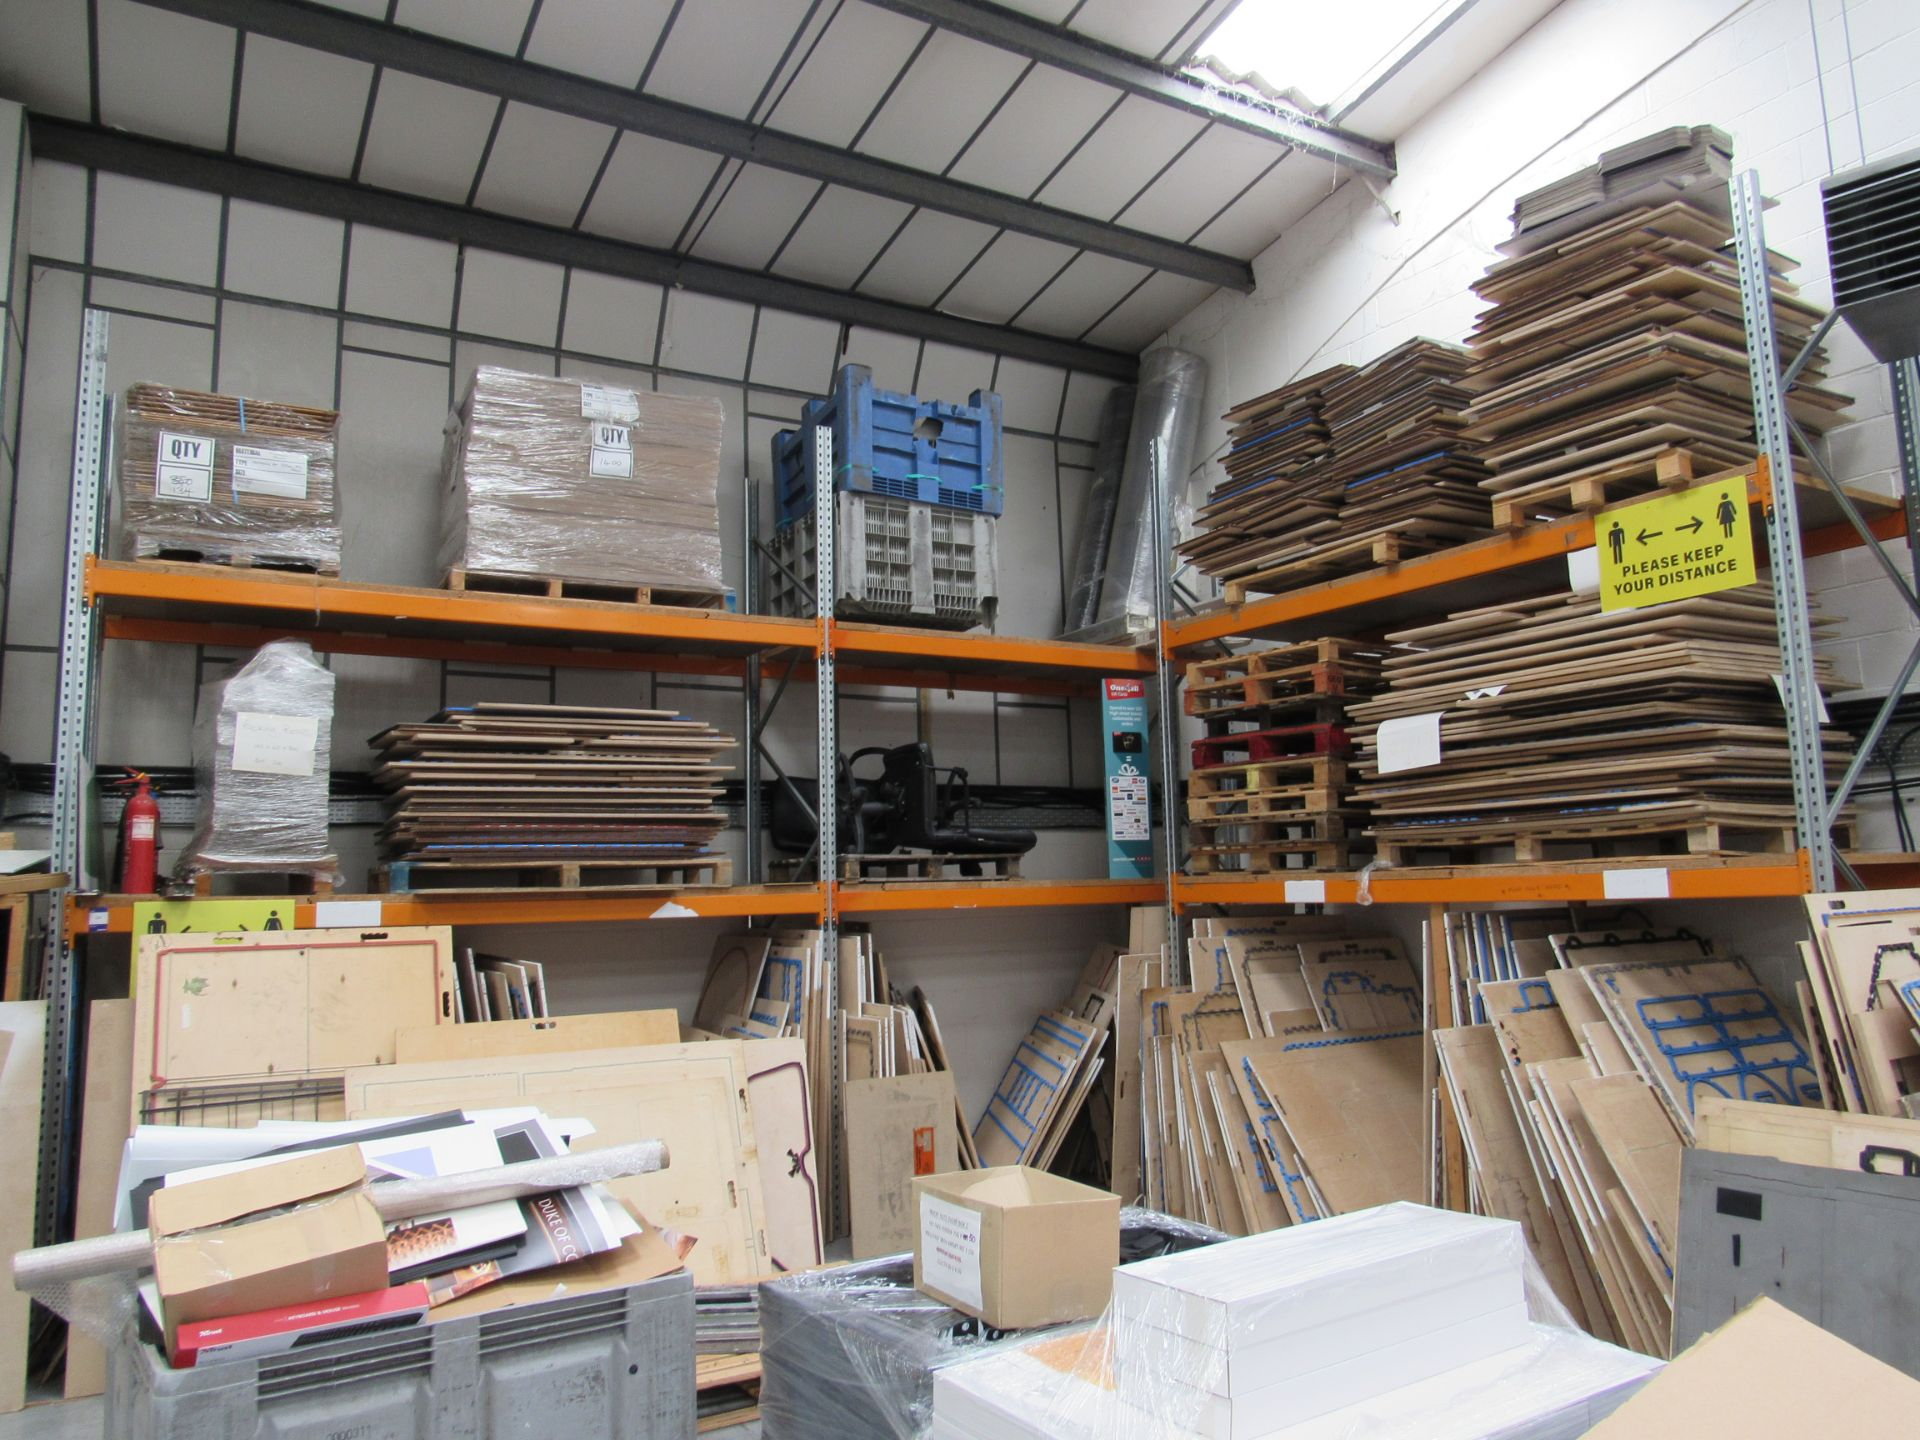 3 Bays Warehouse Racking, 5 End Frames, 12 Cross Beams (assembled) plus 1 End Frame and Approx. 16